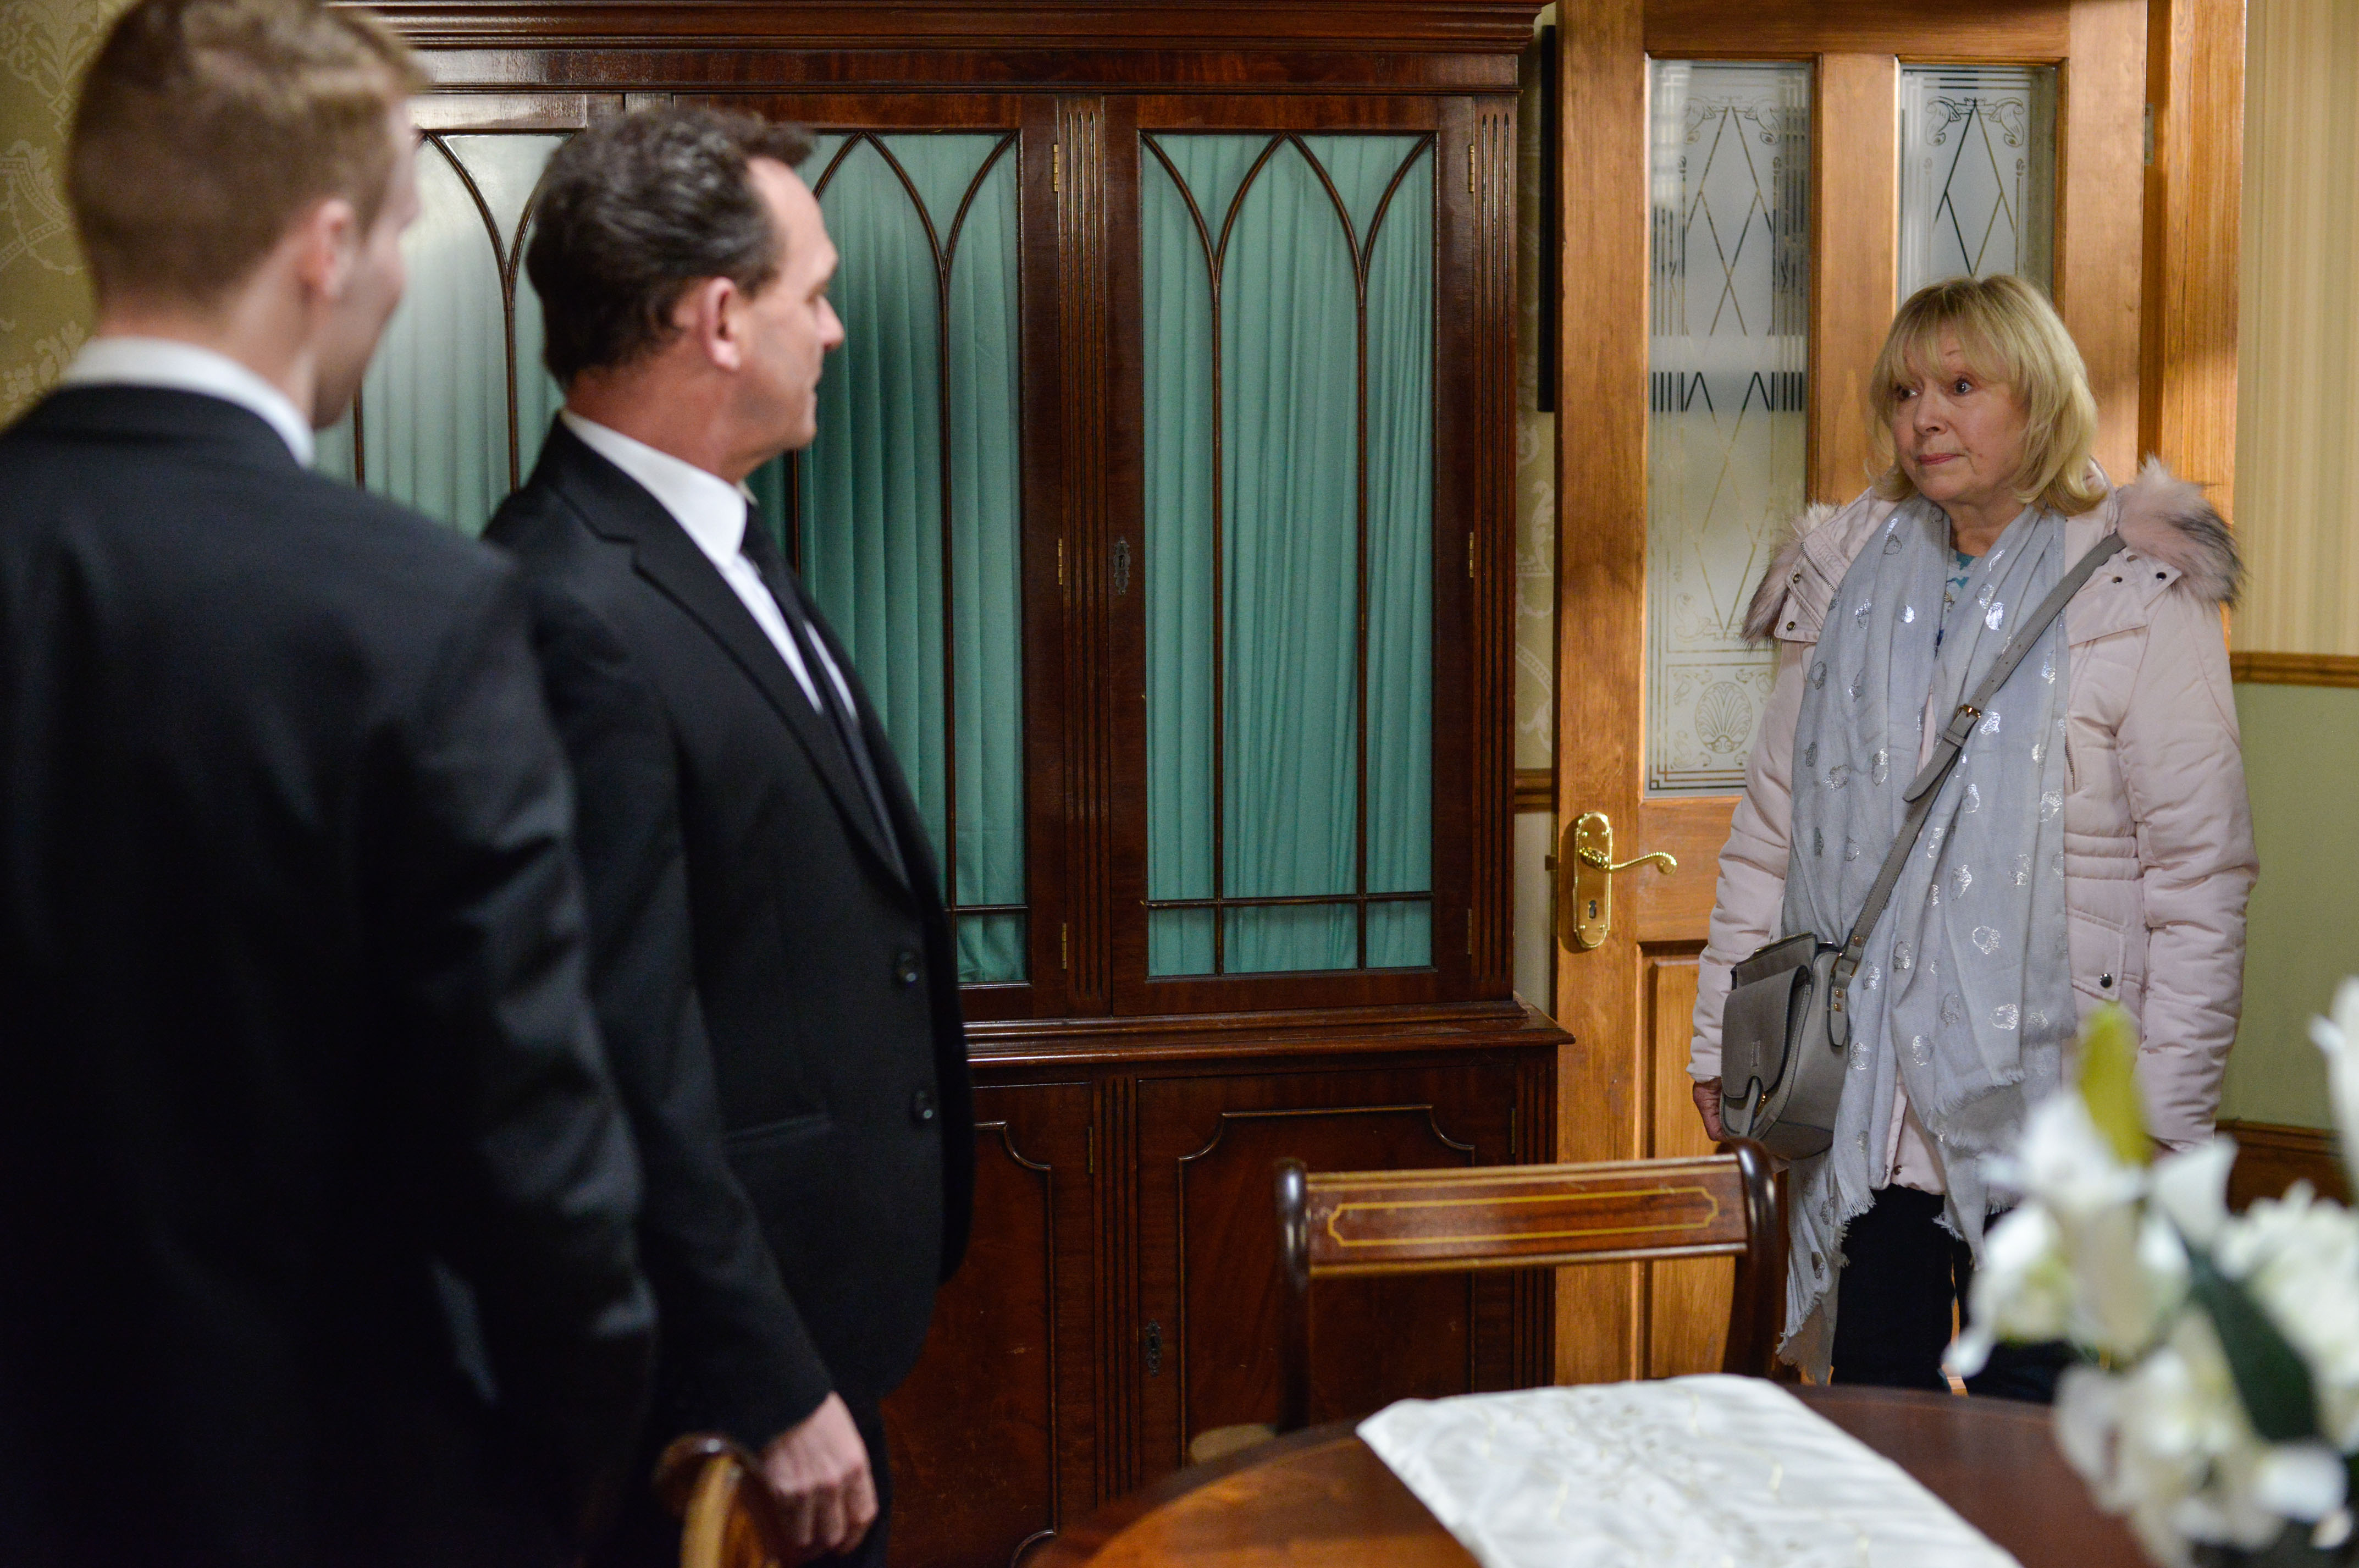 EastEnders - January-April 2018 - 5650